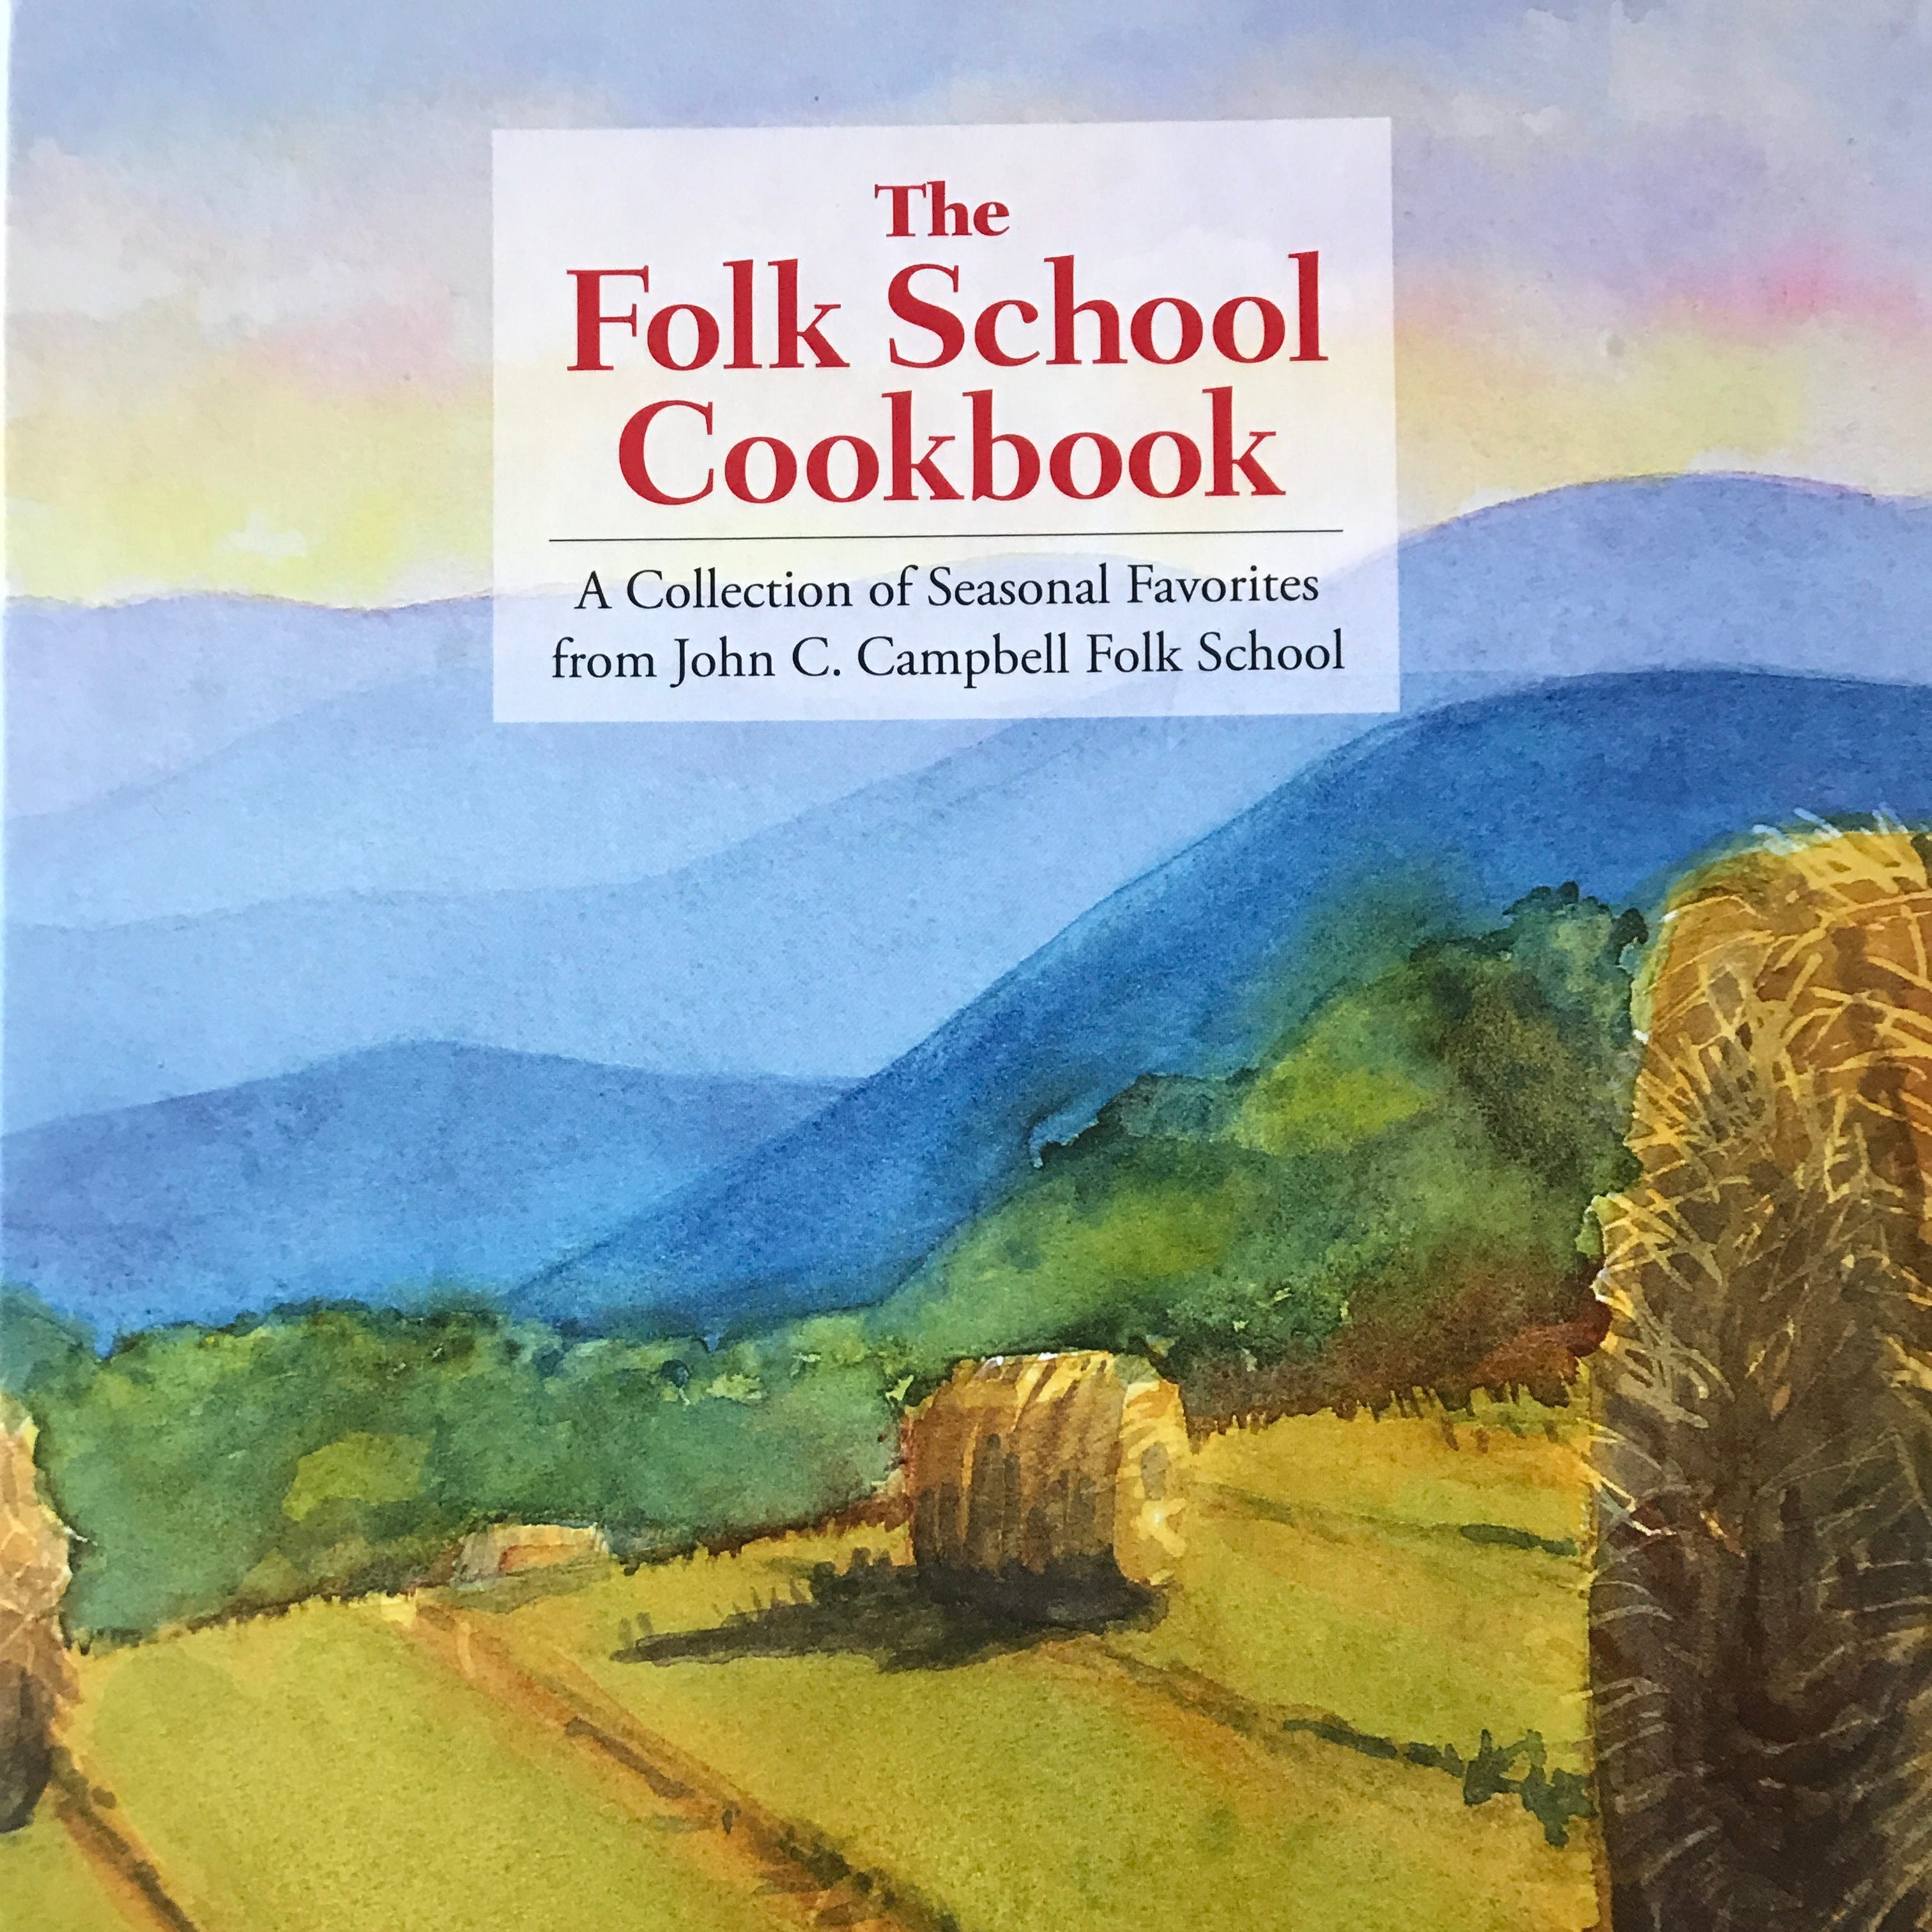 The Folk School Cookbook offers a collection of recipes from the John C. Campbell Folk School's portfolio.